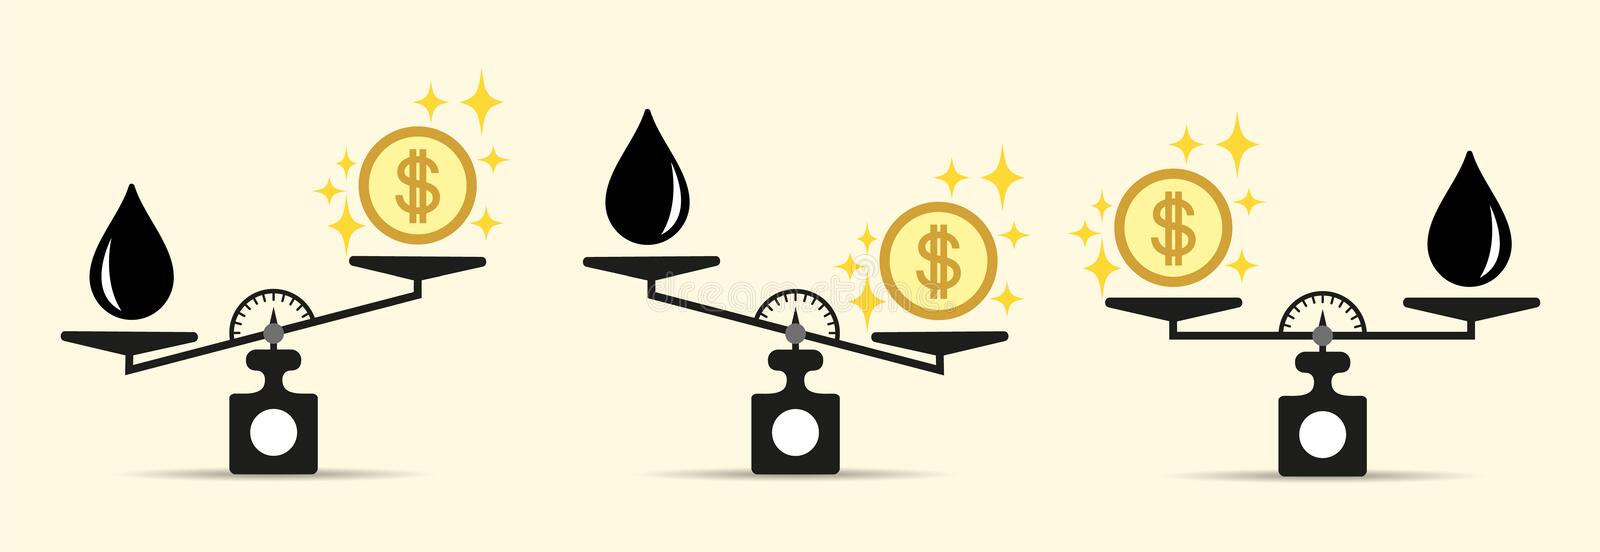 Scales, Oil product, Money or Finance. The concept of choice. Flat style. Vector illustration on isolated background. stock illustration